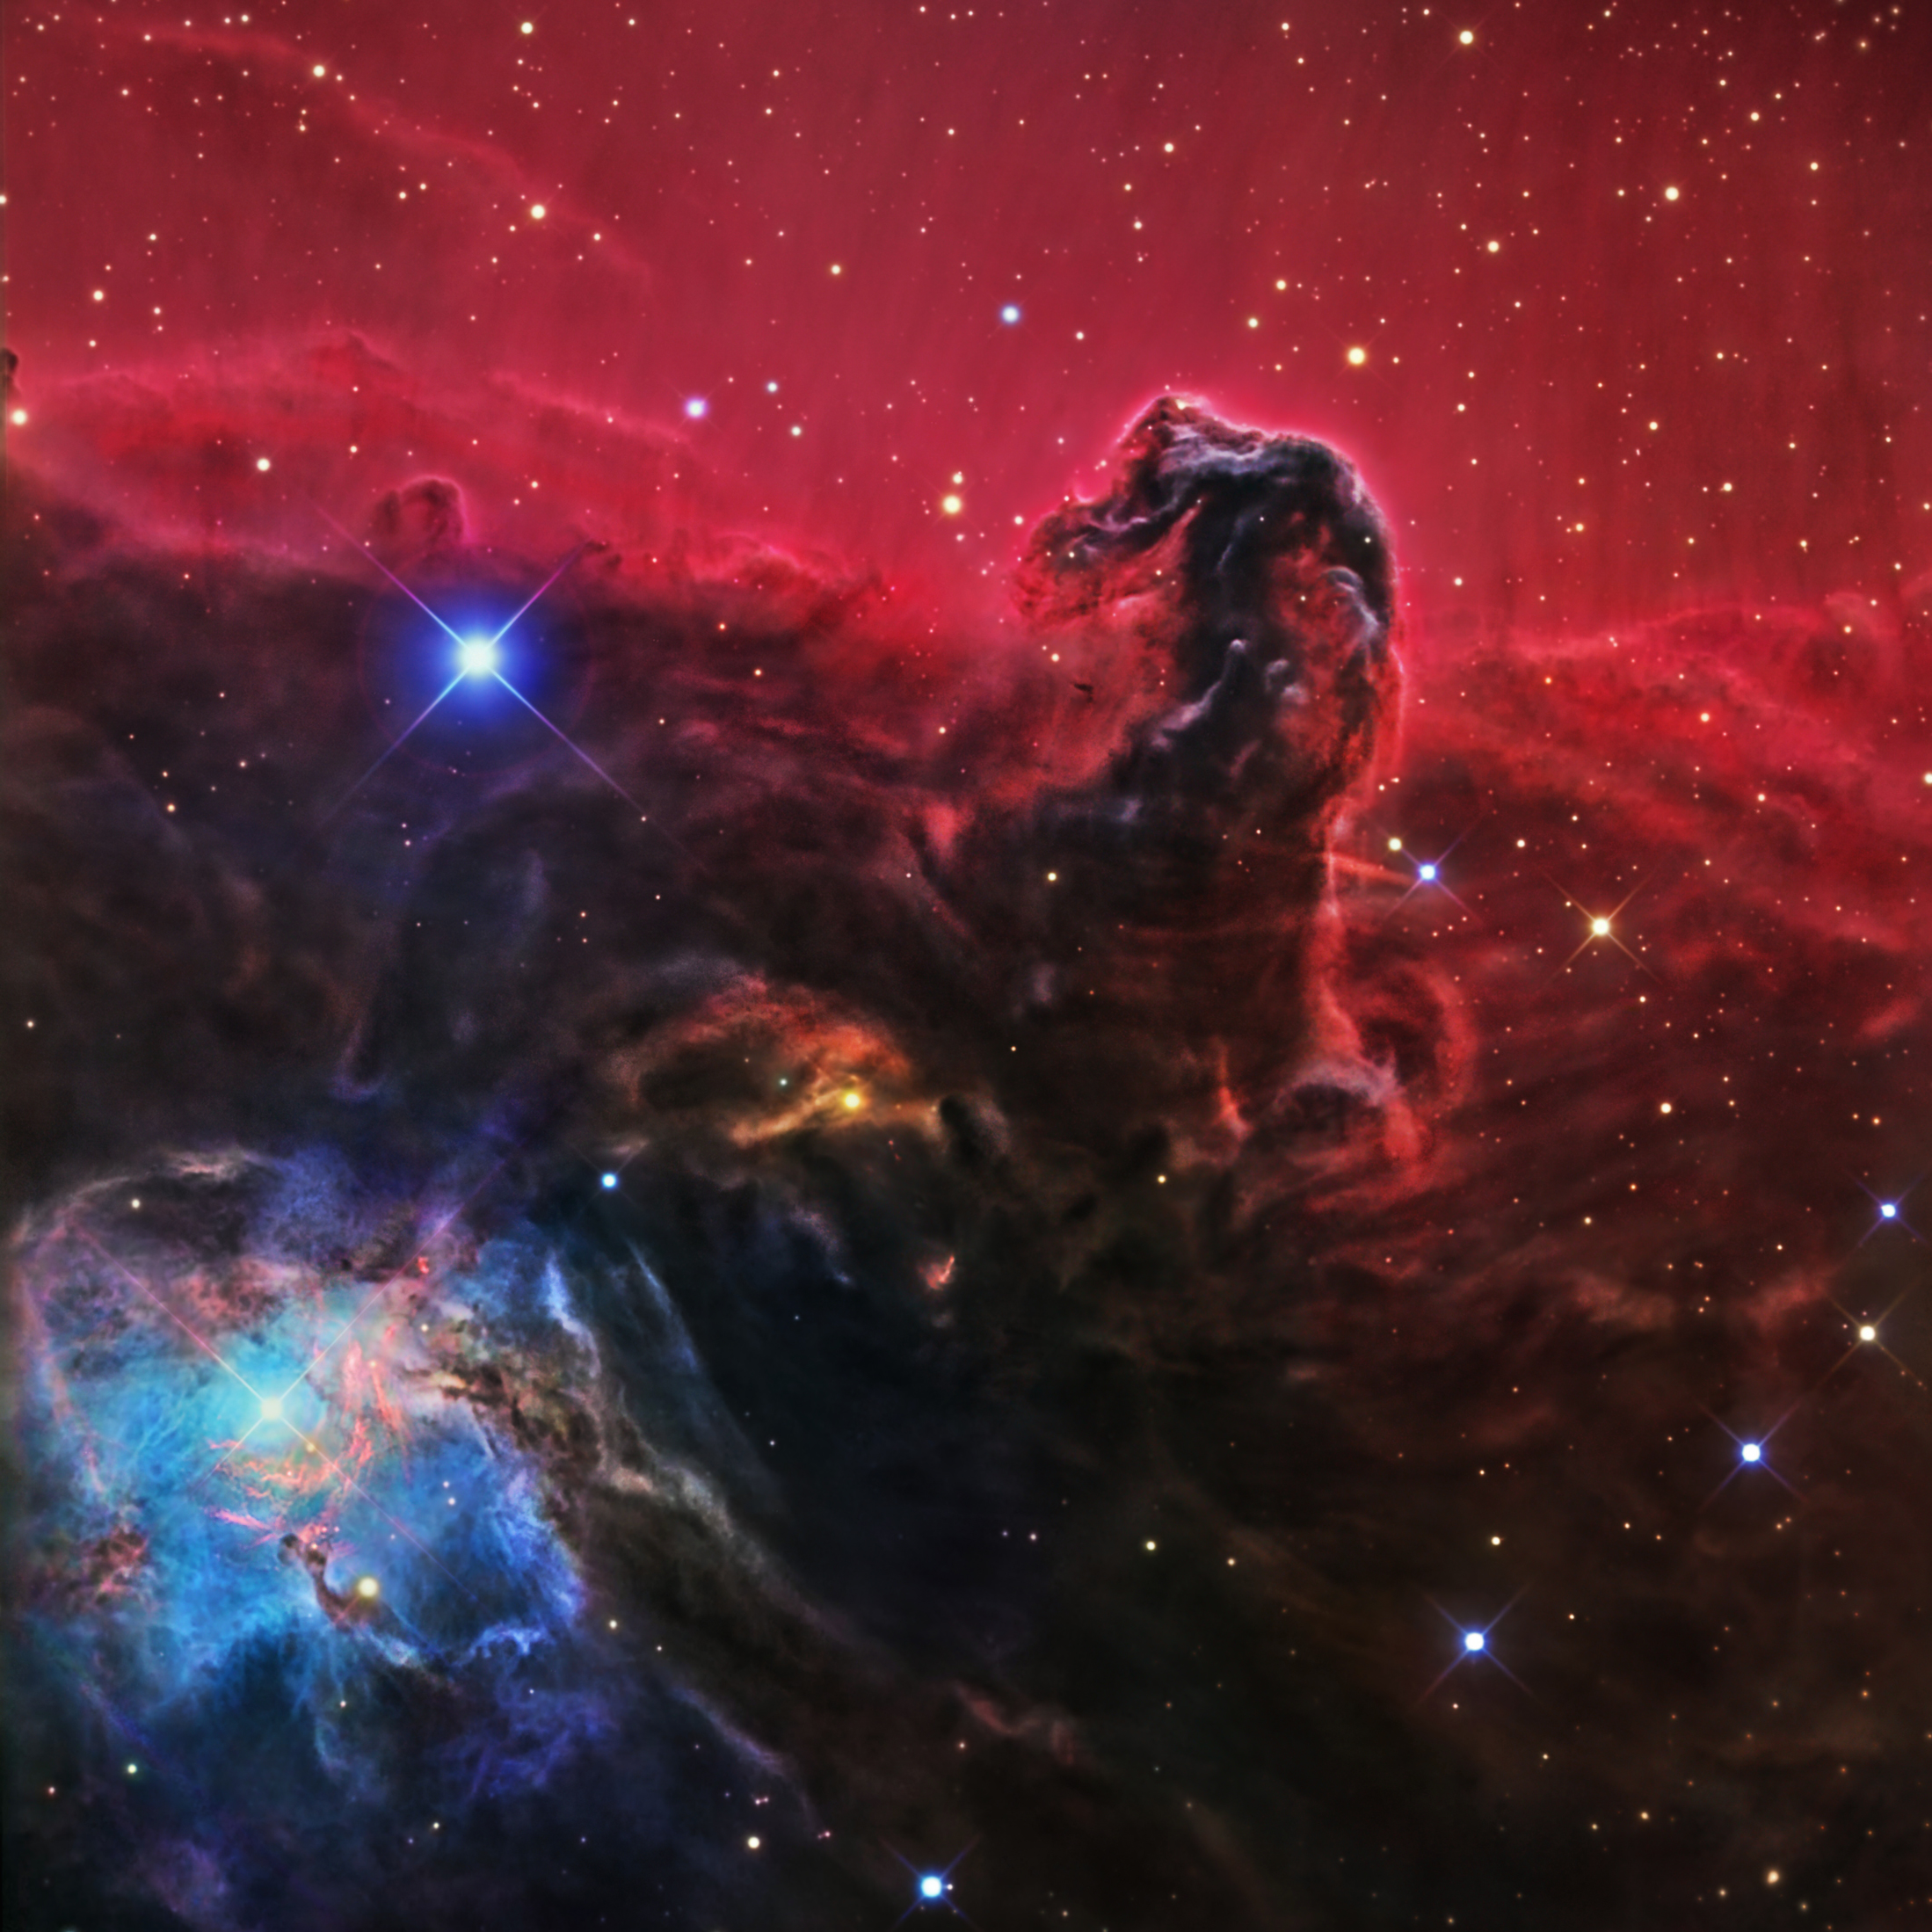 horsehead nebula pictures - HD1024×1024